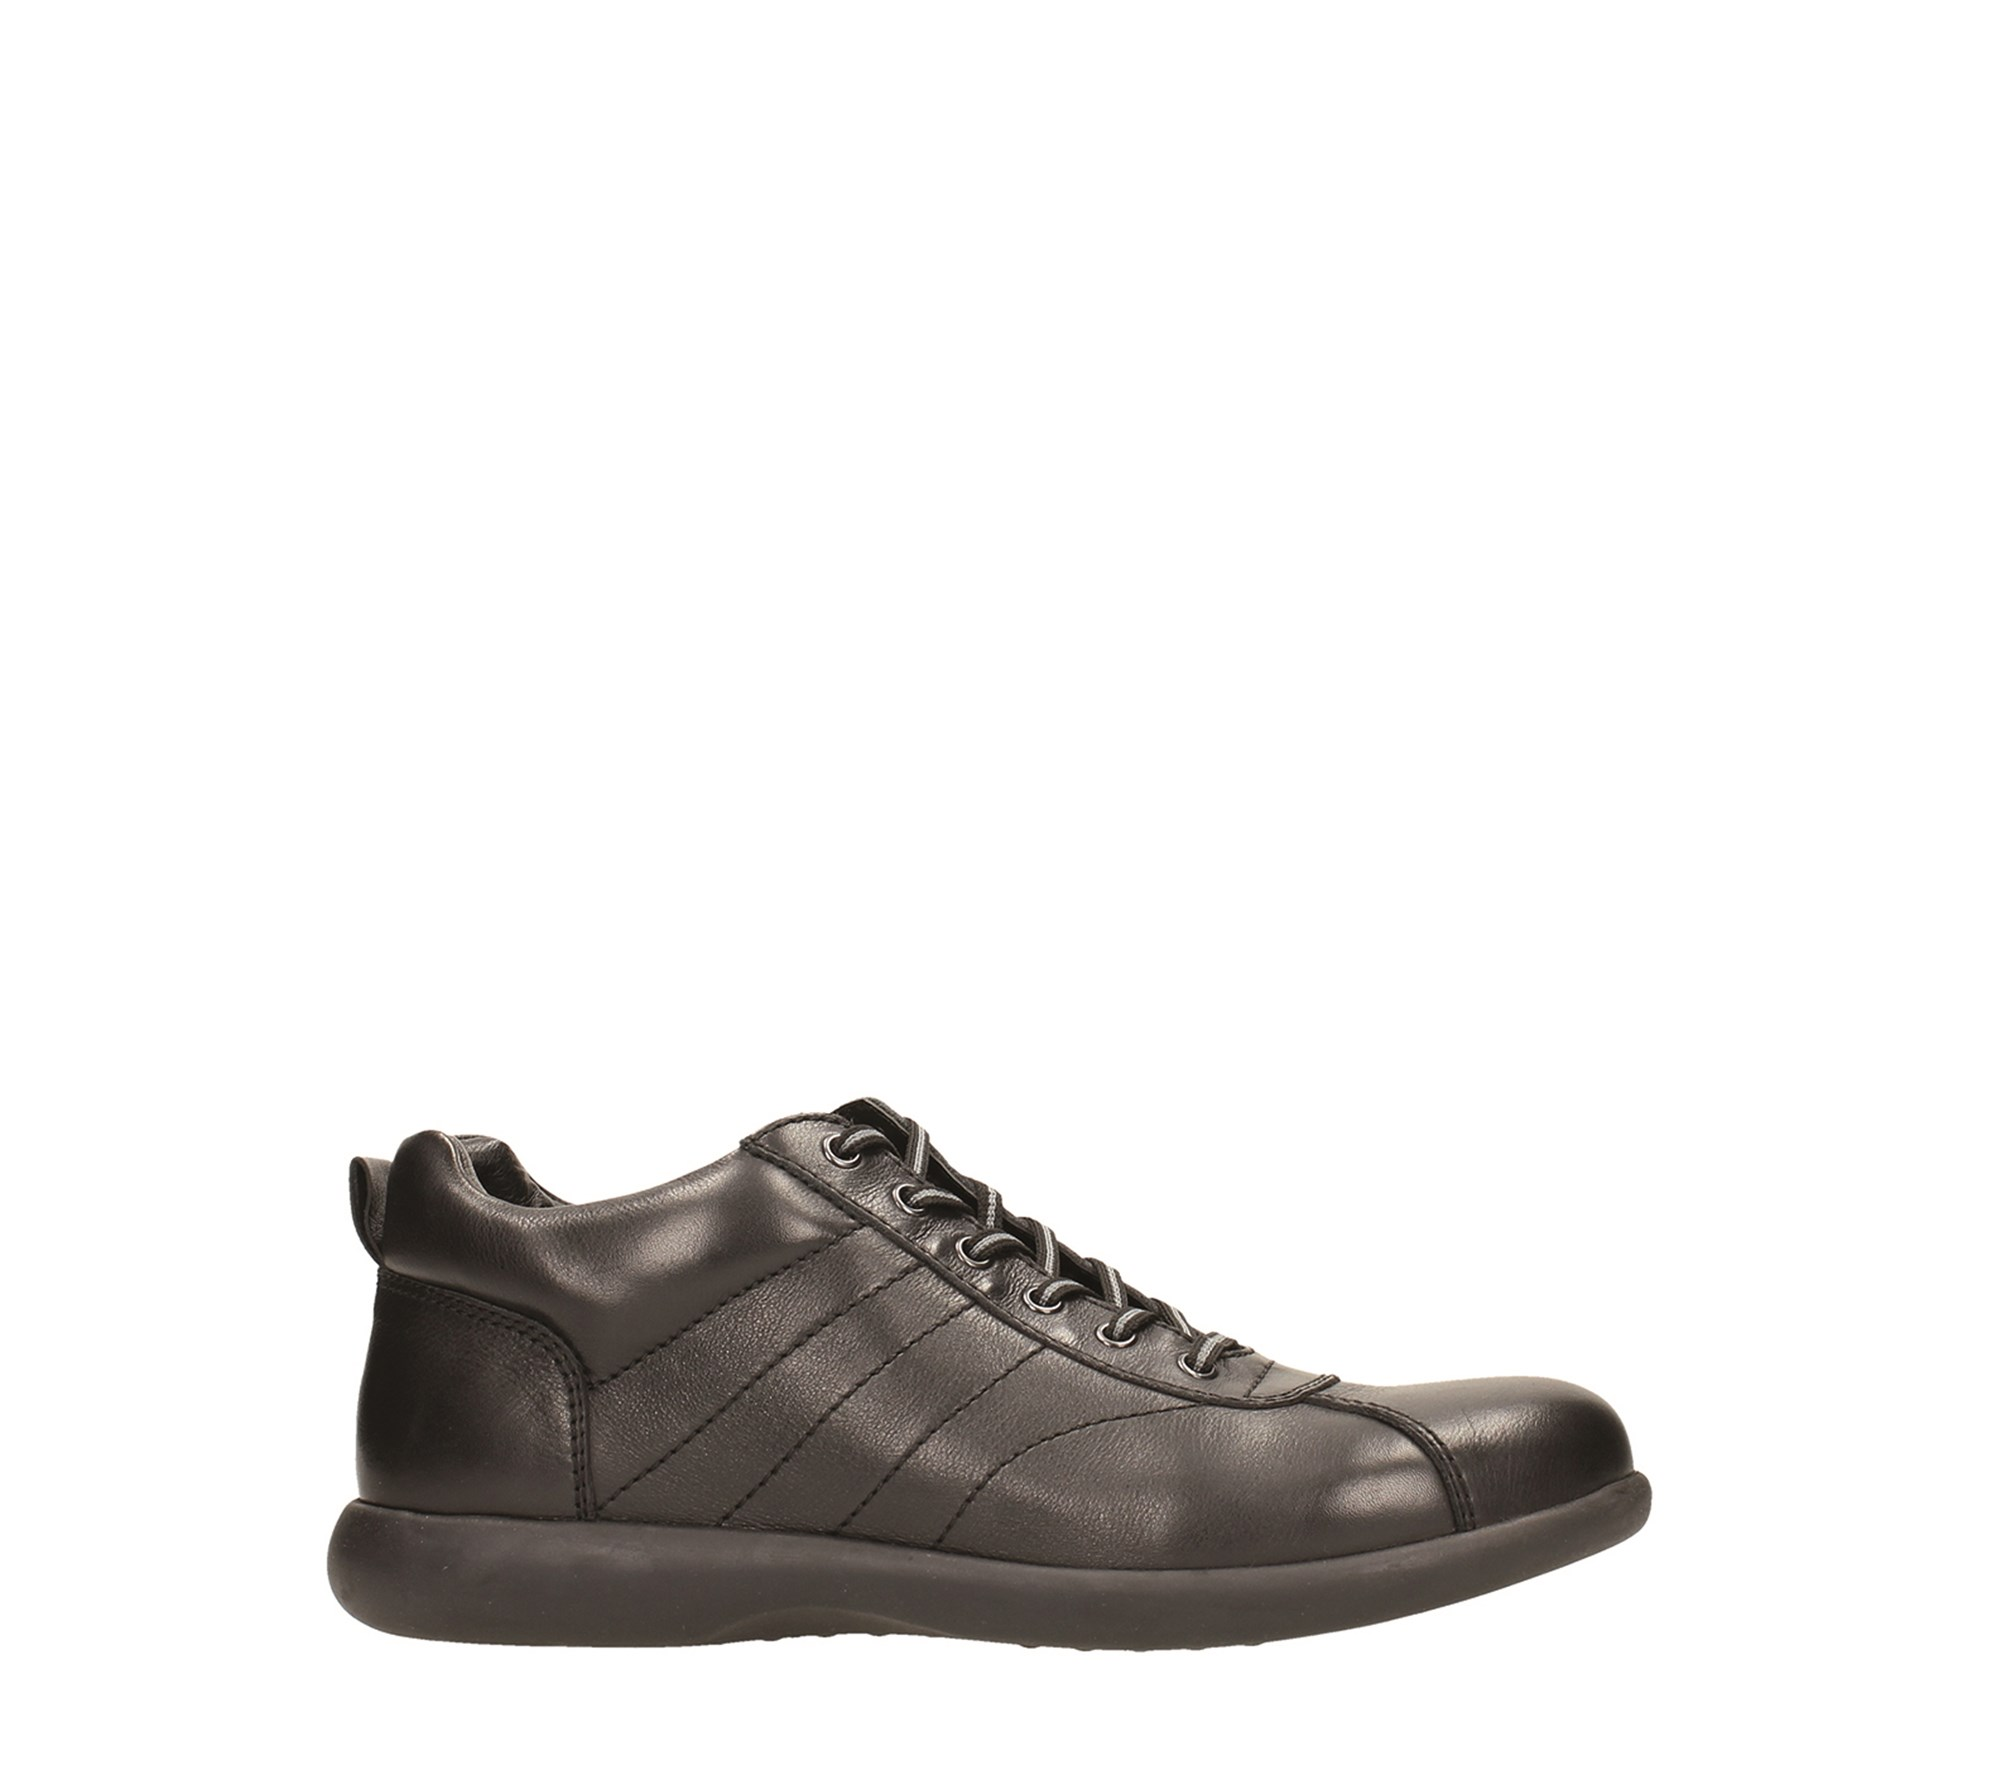 Tata Italia Shoes Man Sneakers 18-11-3067